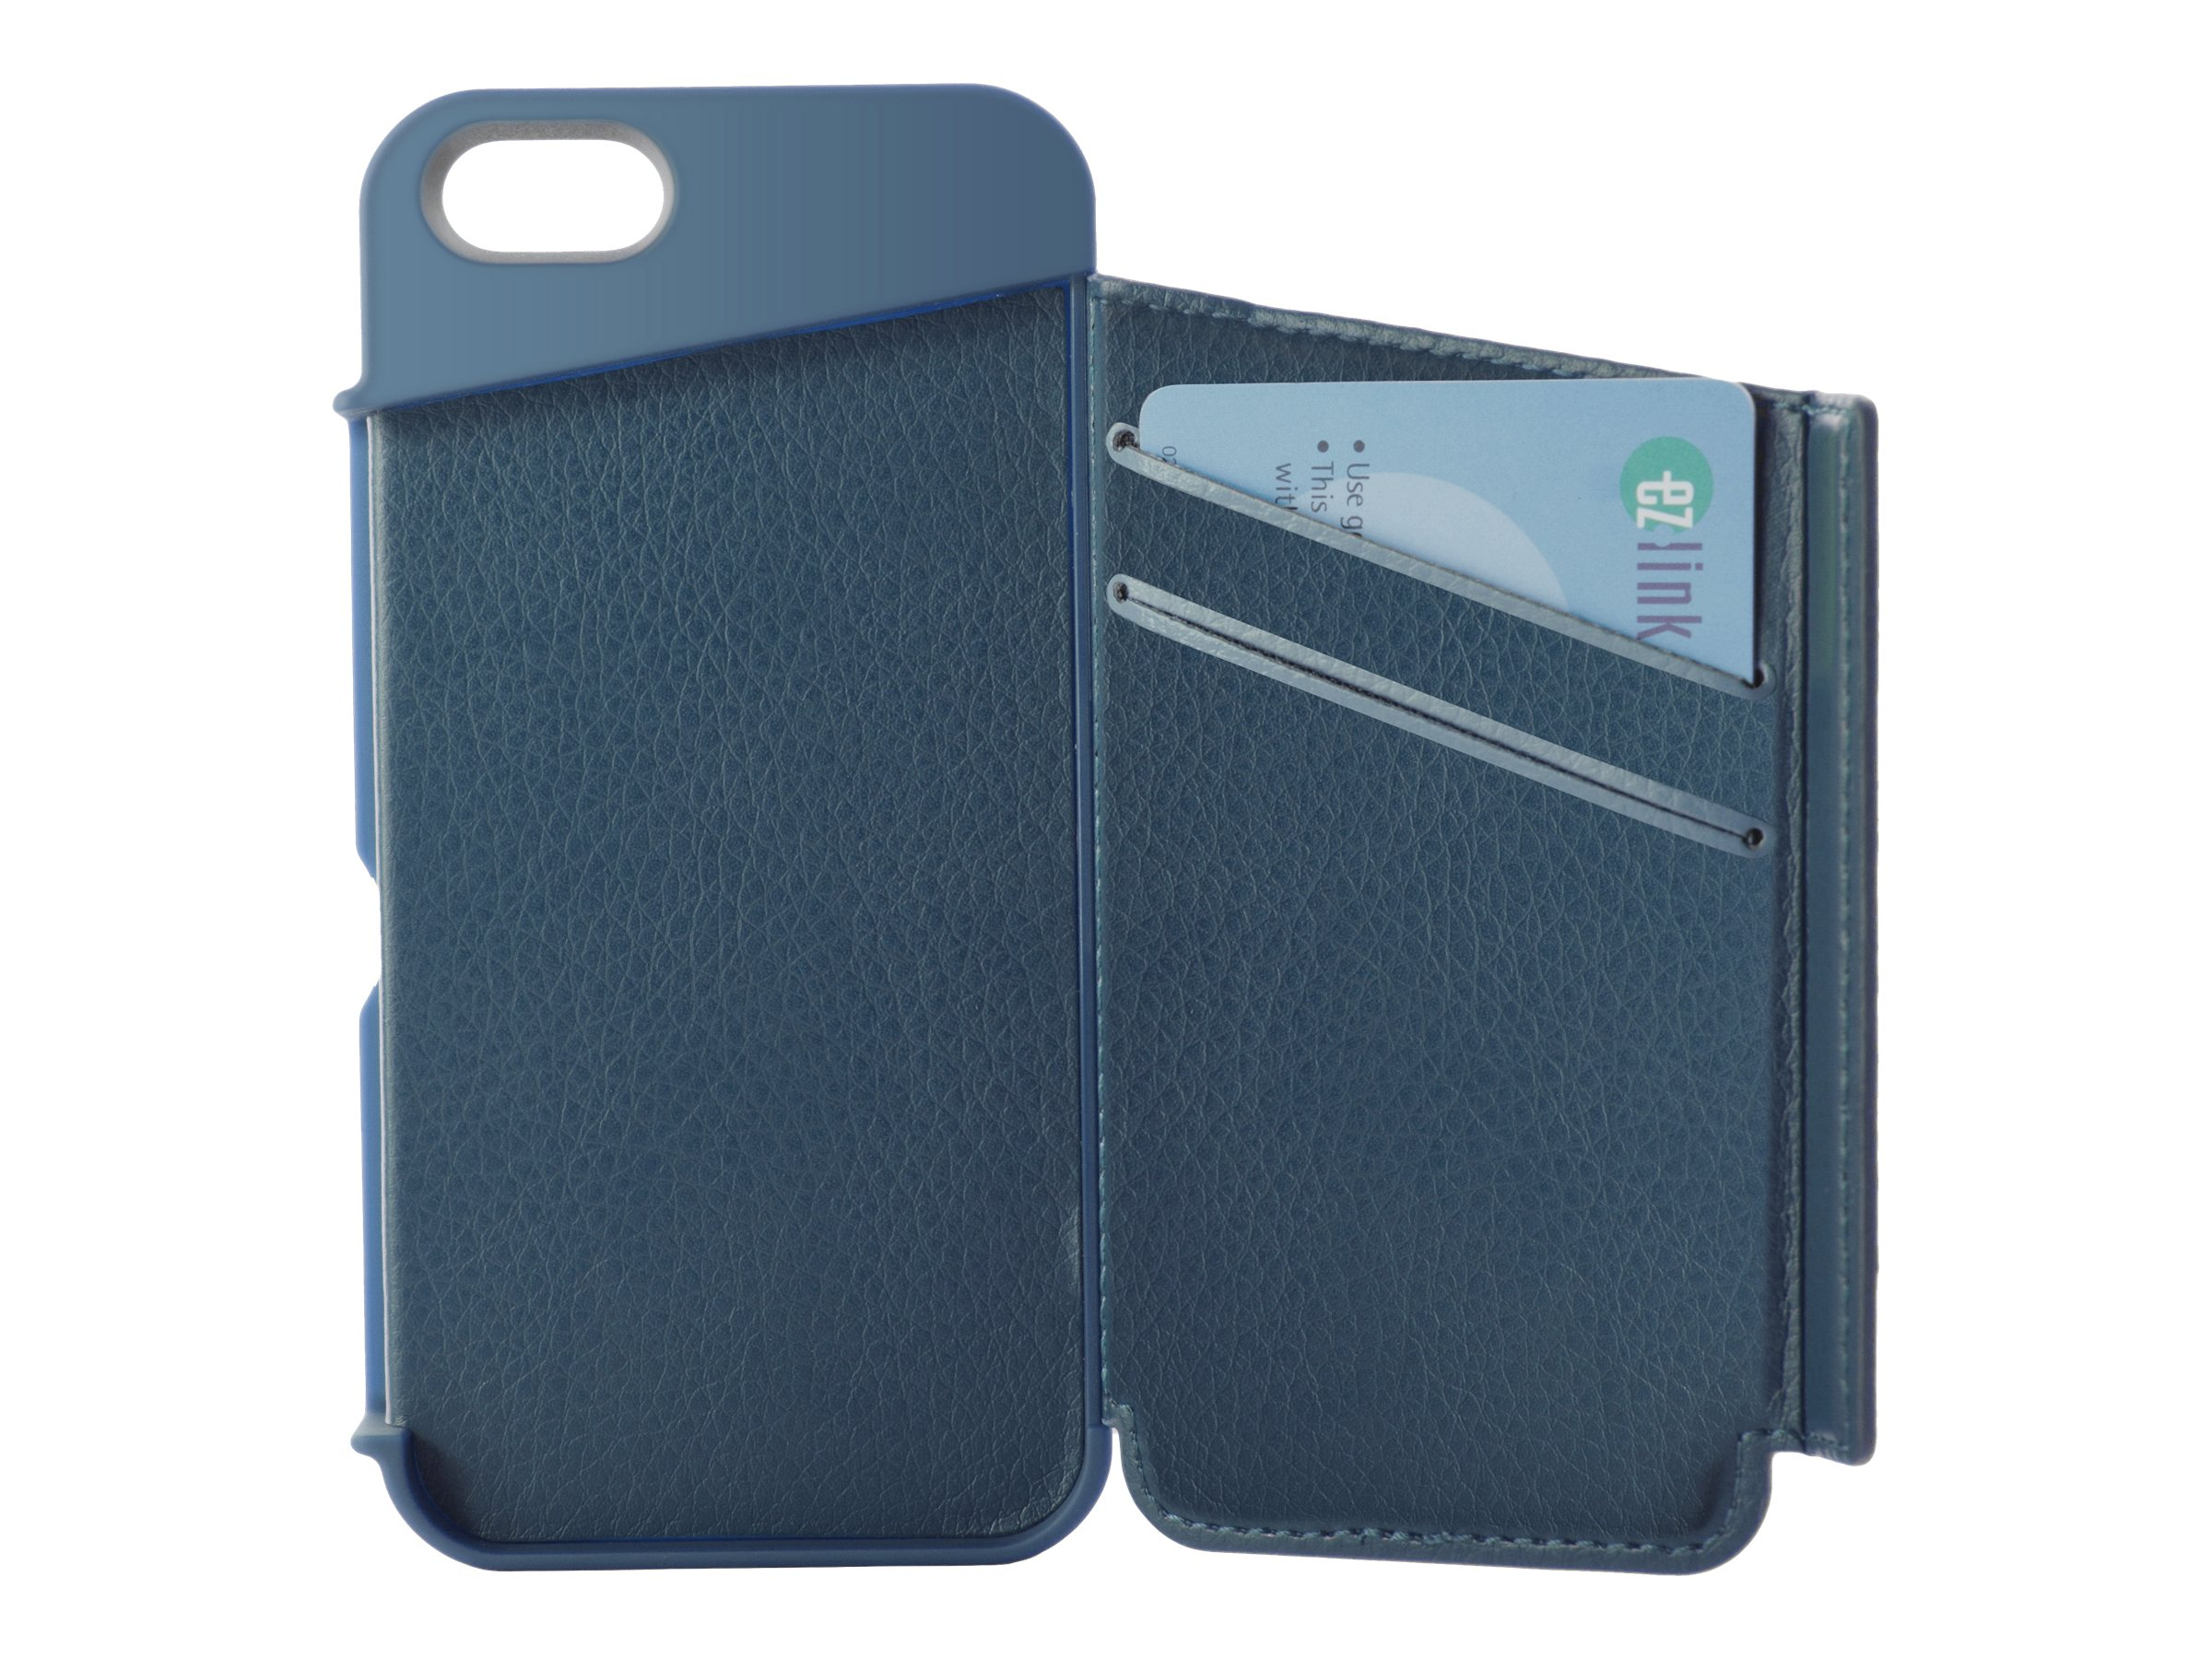 Targus Slidercase for iPhone 5, Blue, THD02202US, 14765645, Carrying Cases - Phones/PDAs